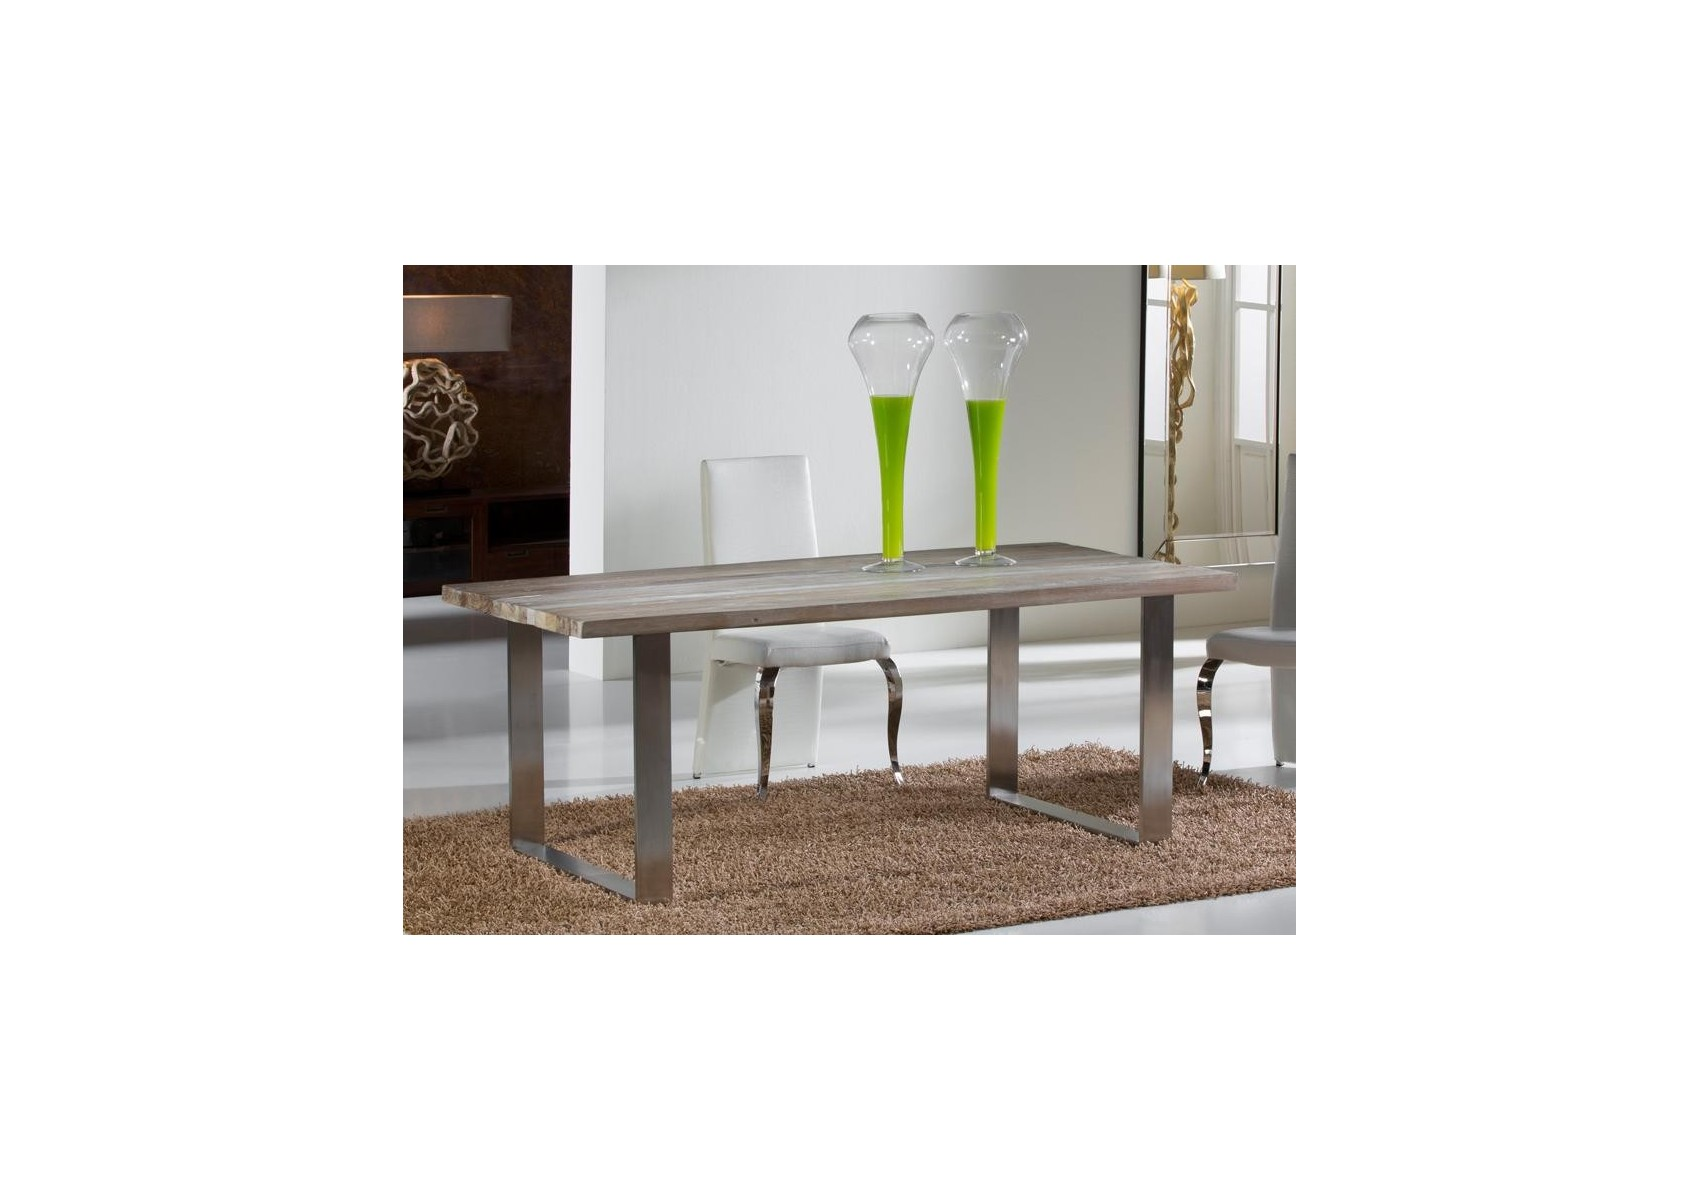 Model de table a manger en bois maison design for Table salle a manger bois